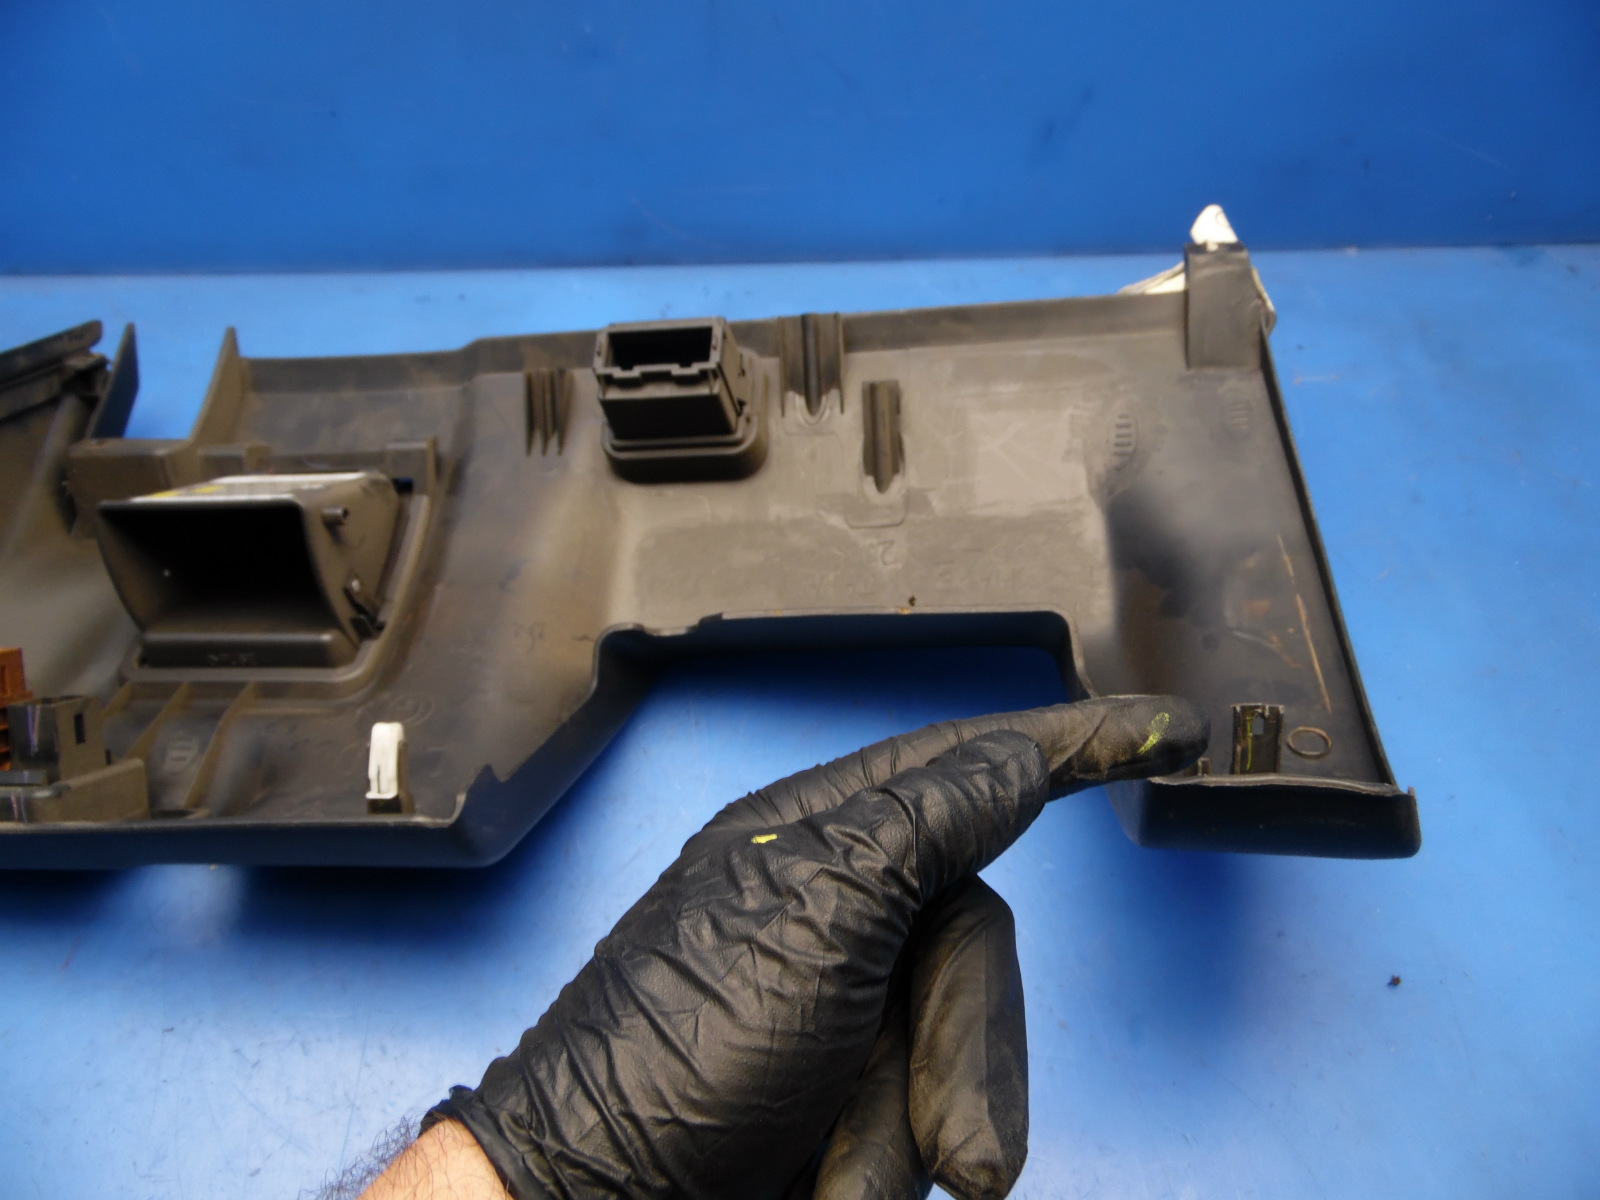 02 05 Wrx Impreza Oem Under Dash Cover Compartment Fuse Box Diagram 1998 Audi Canada Main Flaws 3